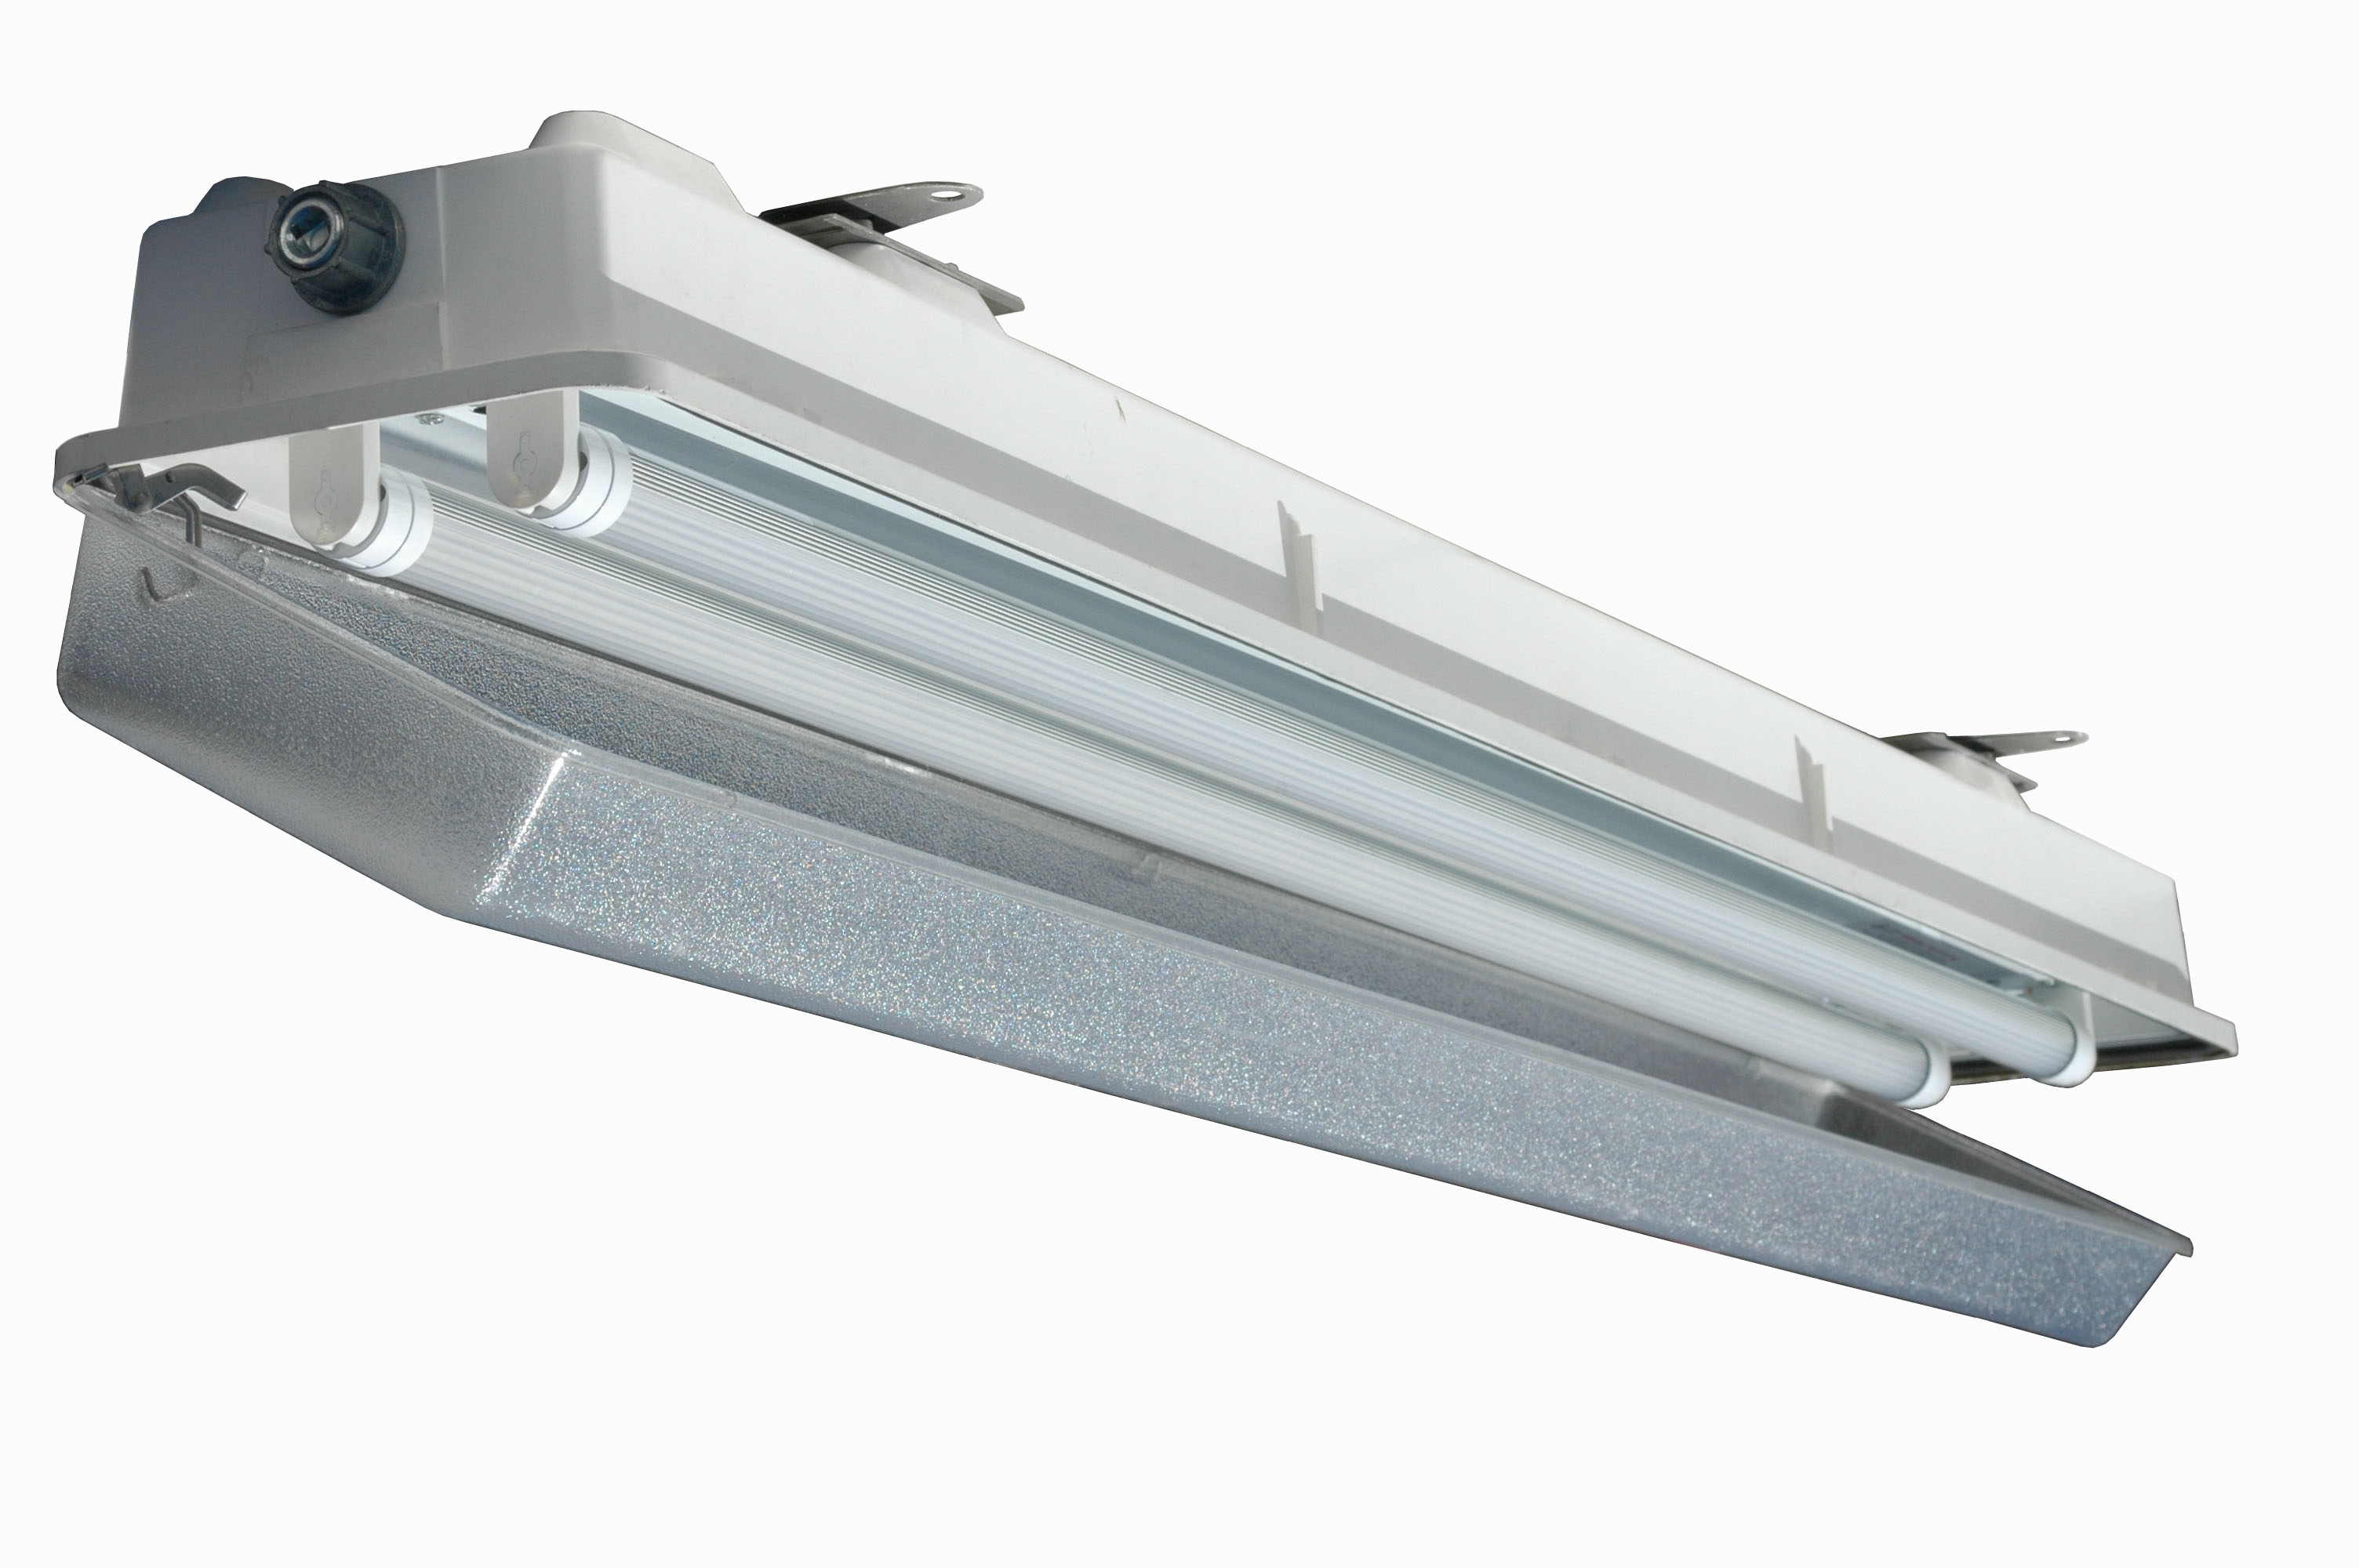 Led Lighting Fixtures : ... led g2 explosion proof led light larsonelectronics com halp 48 2l led